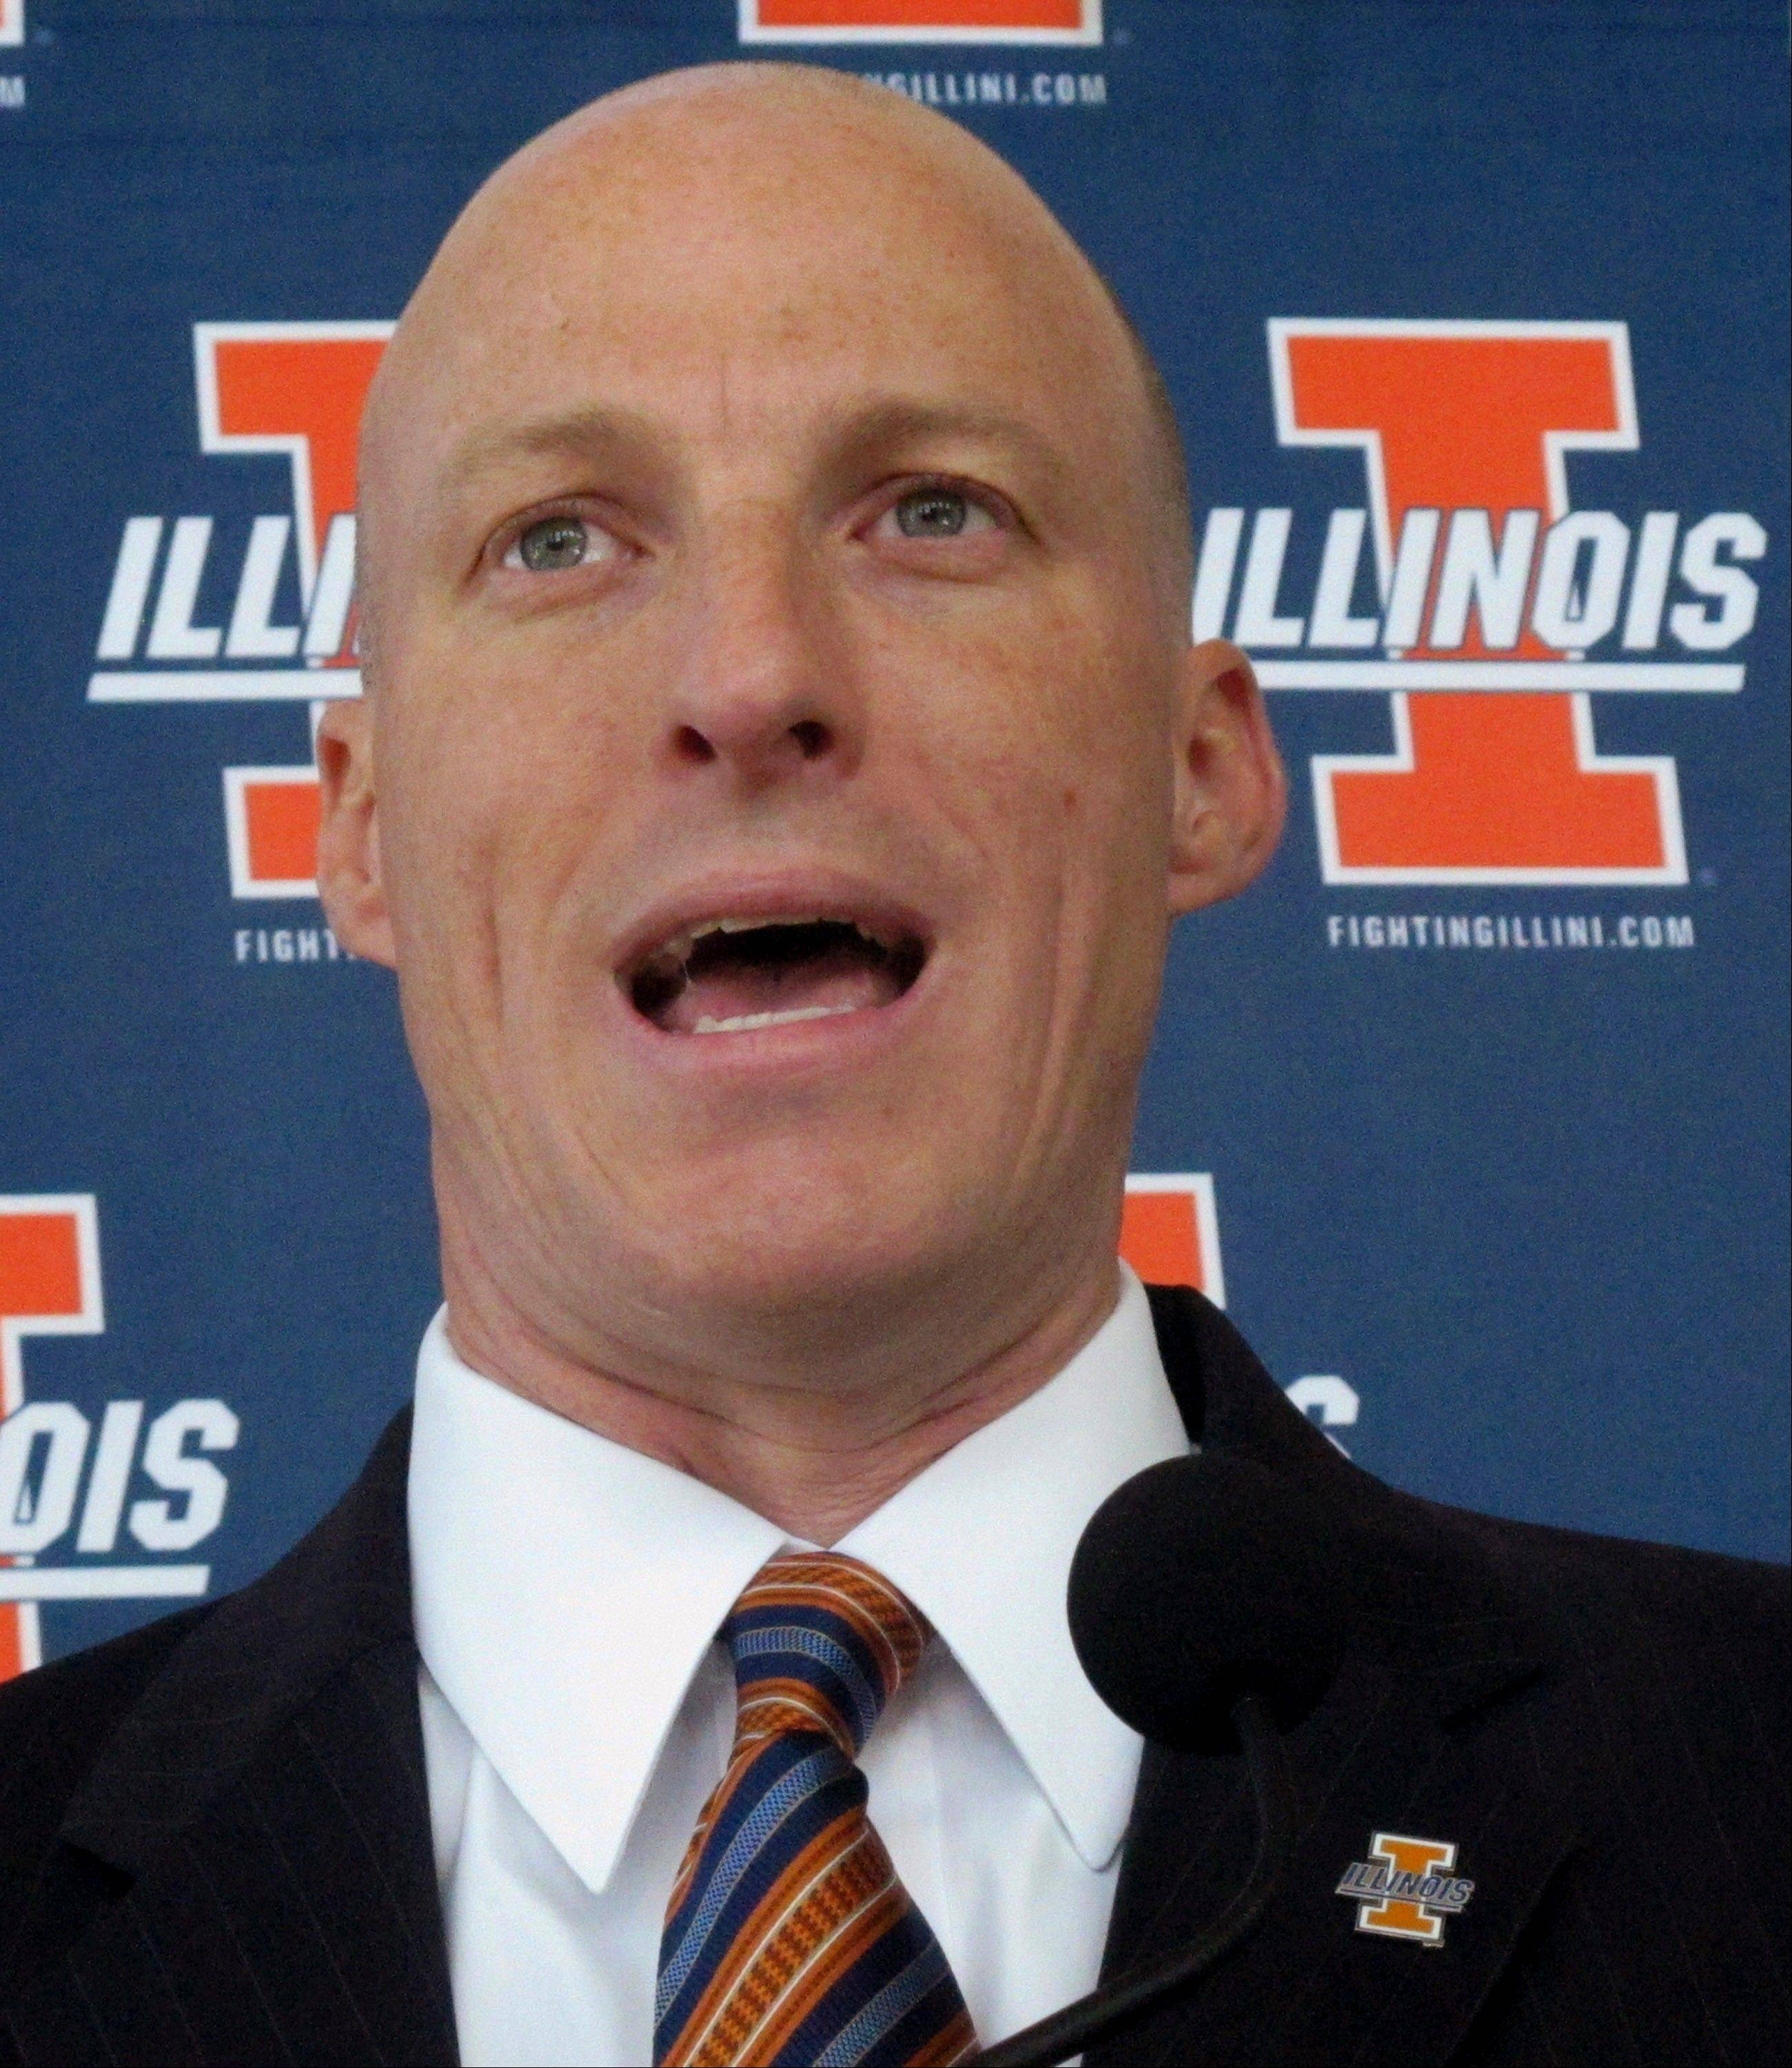 First-year Illinois basketball coach John Groce talks to reporters Wednesday during the team's media day in Champaign. Groce, who replaced Bruce Weber earlier this year, says he plans to play a fast-paced style but isnÌt yet sure how much of that up-tempo game the teamÌs current roster can handle.